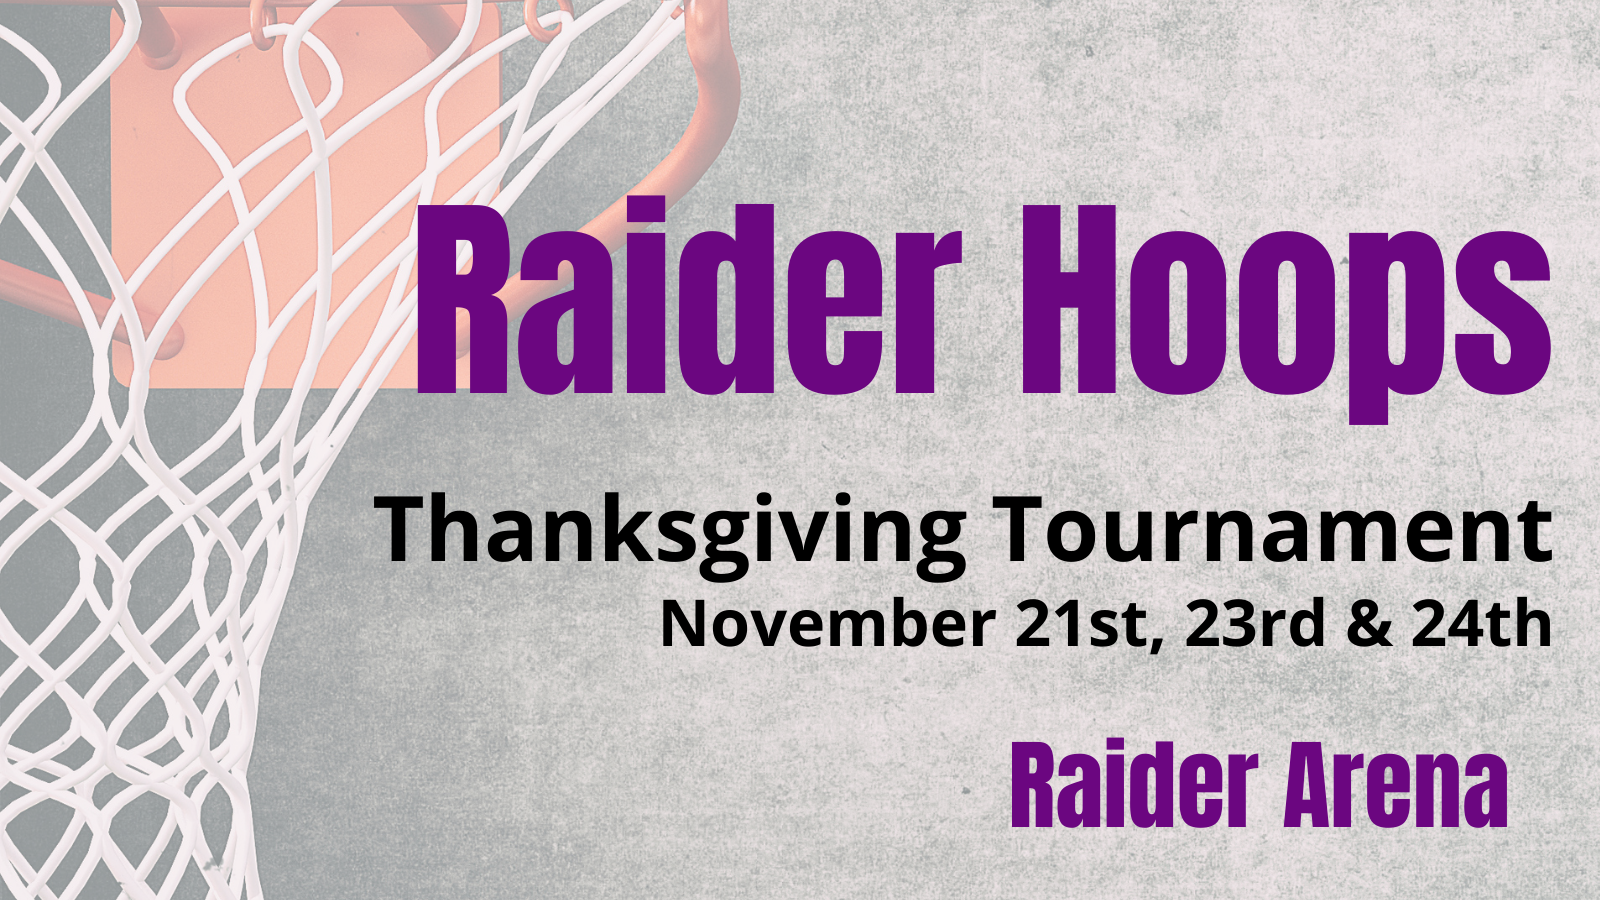 Boys and Girls Basketball: Important tournament info